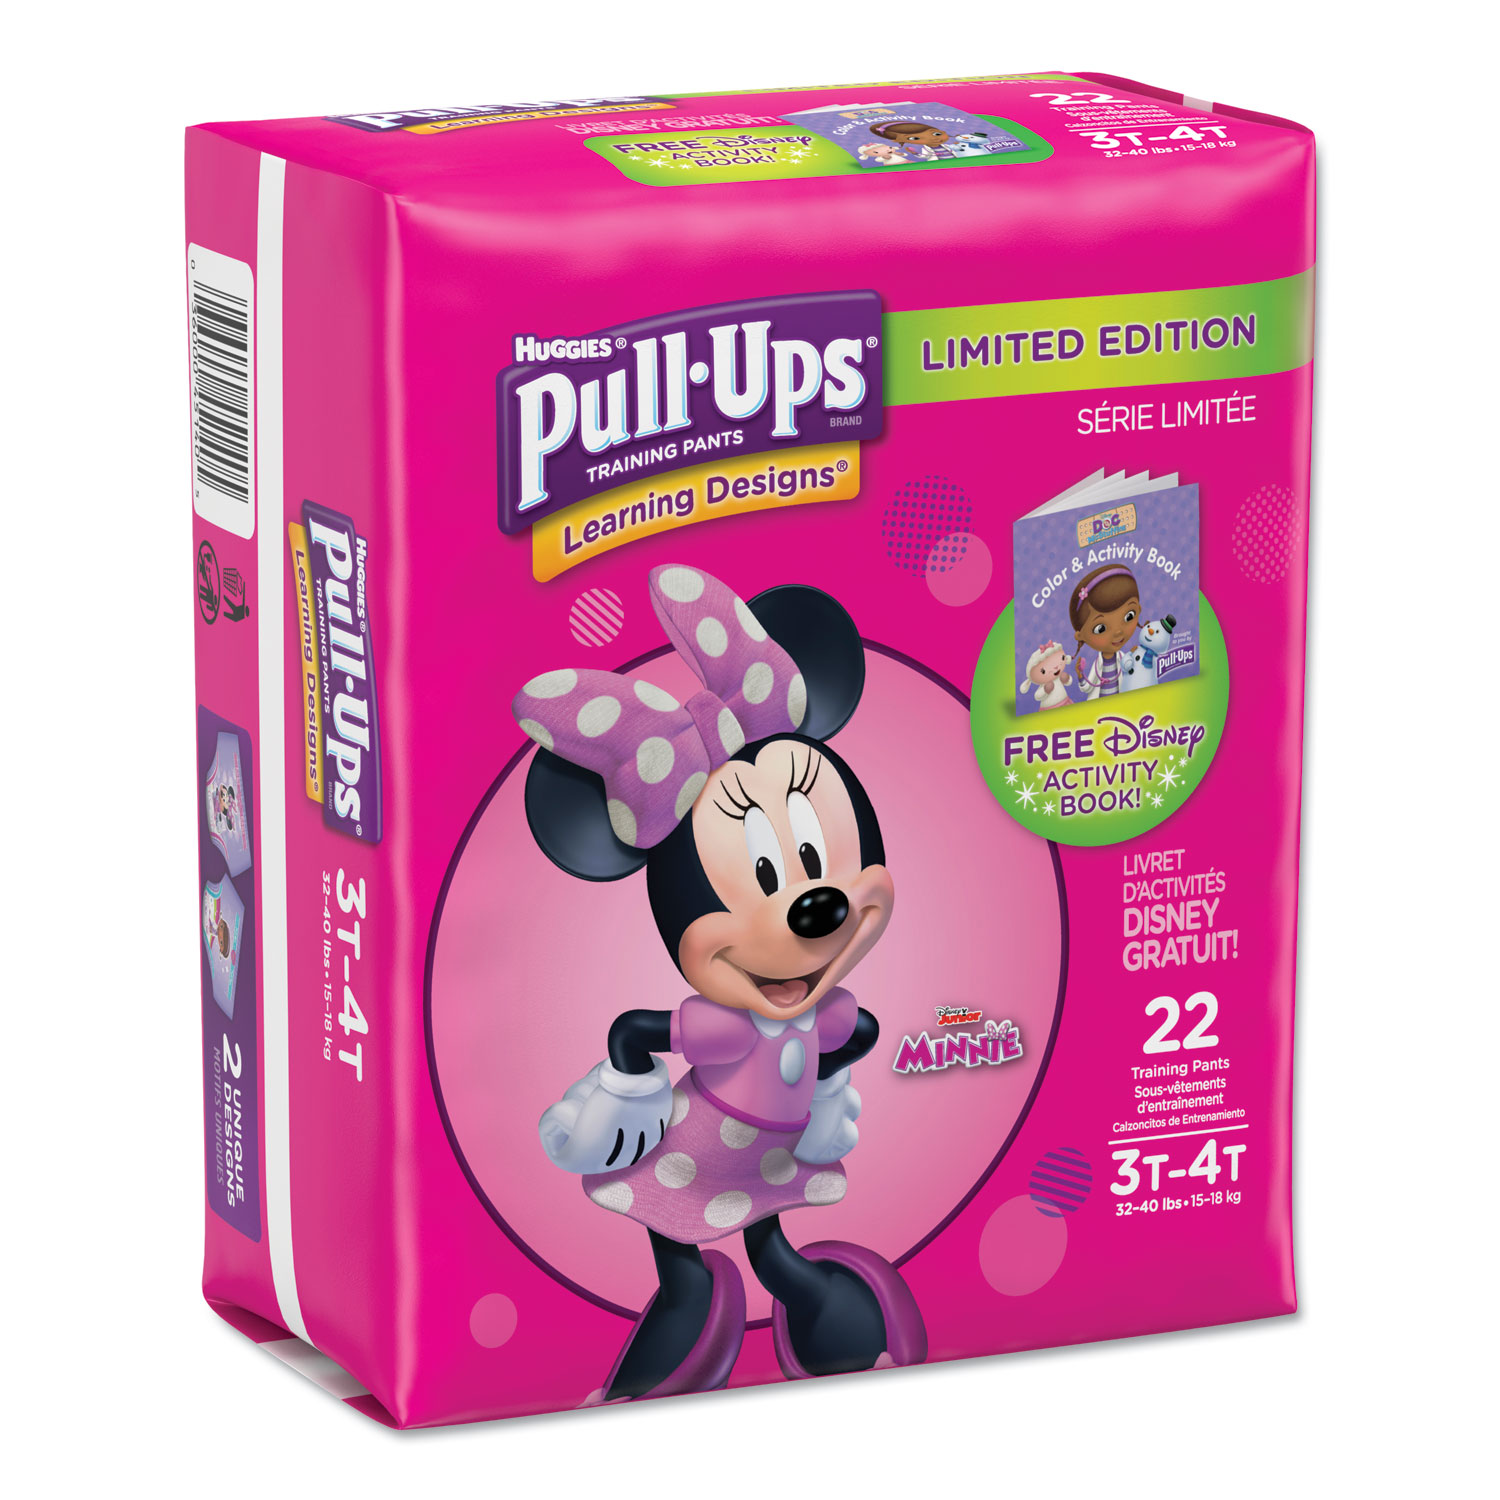 Pull-Ups Learning Designs Potty Training Pants for Girls, Size 3T-4T, 22/Pack